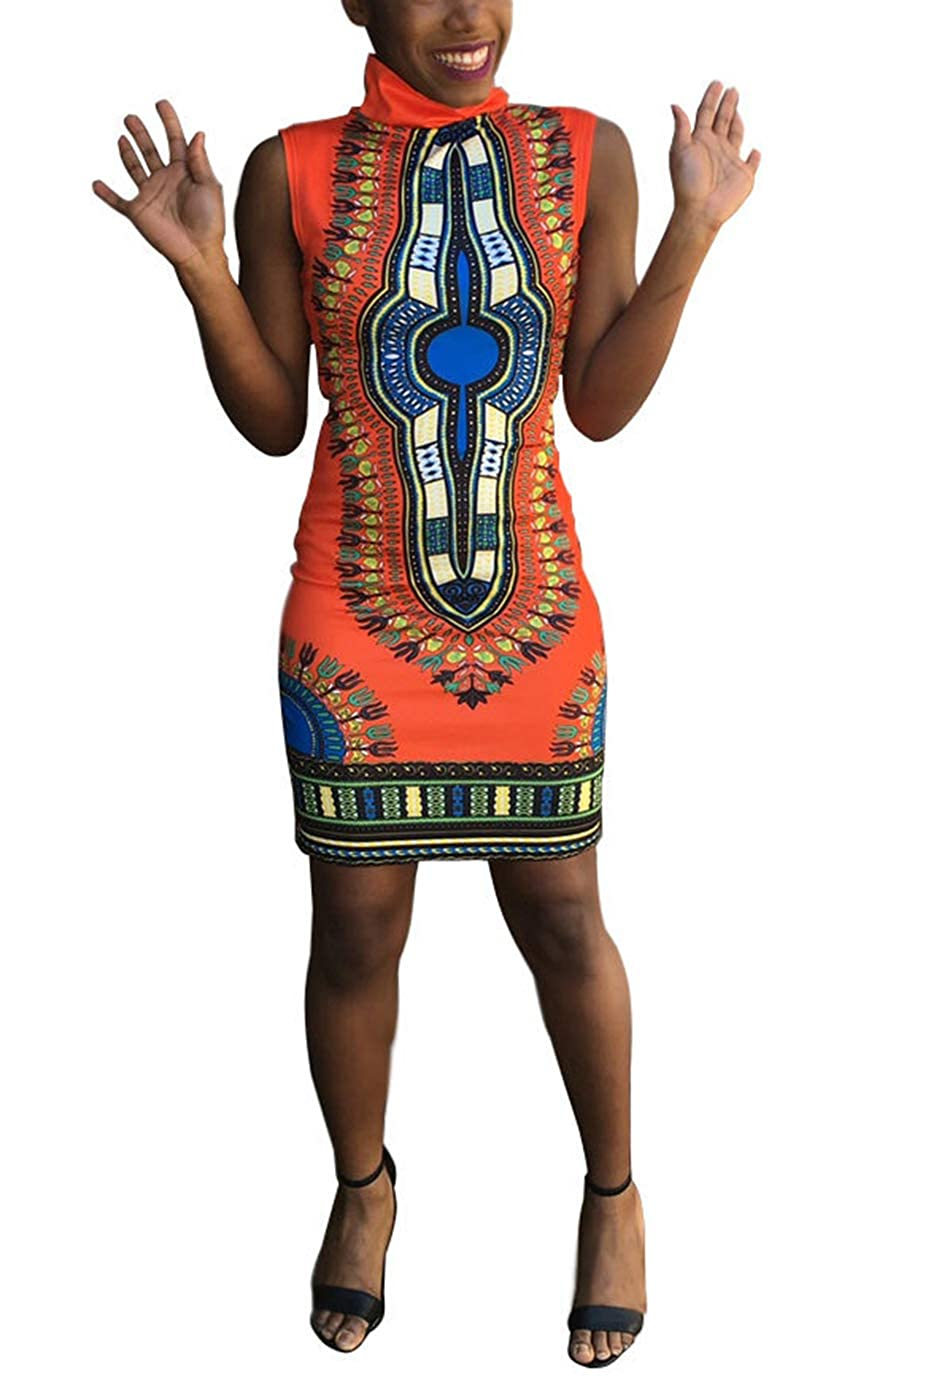 08c8a0d8d QOCAOFIG Women African Print Dashiki Midi Dress, Sleeveless High Collar  Bodycon Slim Sheath Evening Cocktail Pencil Dress at Amazon Women's  Clothing store: